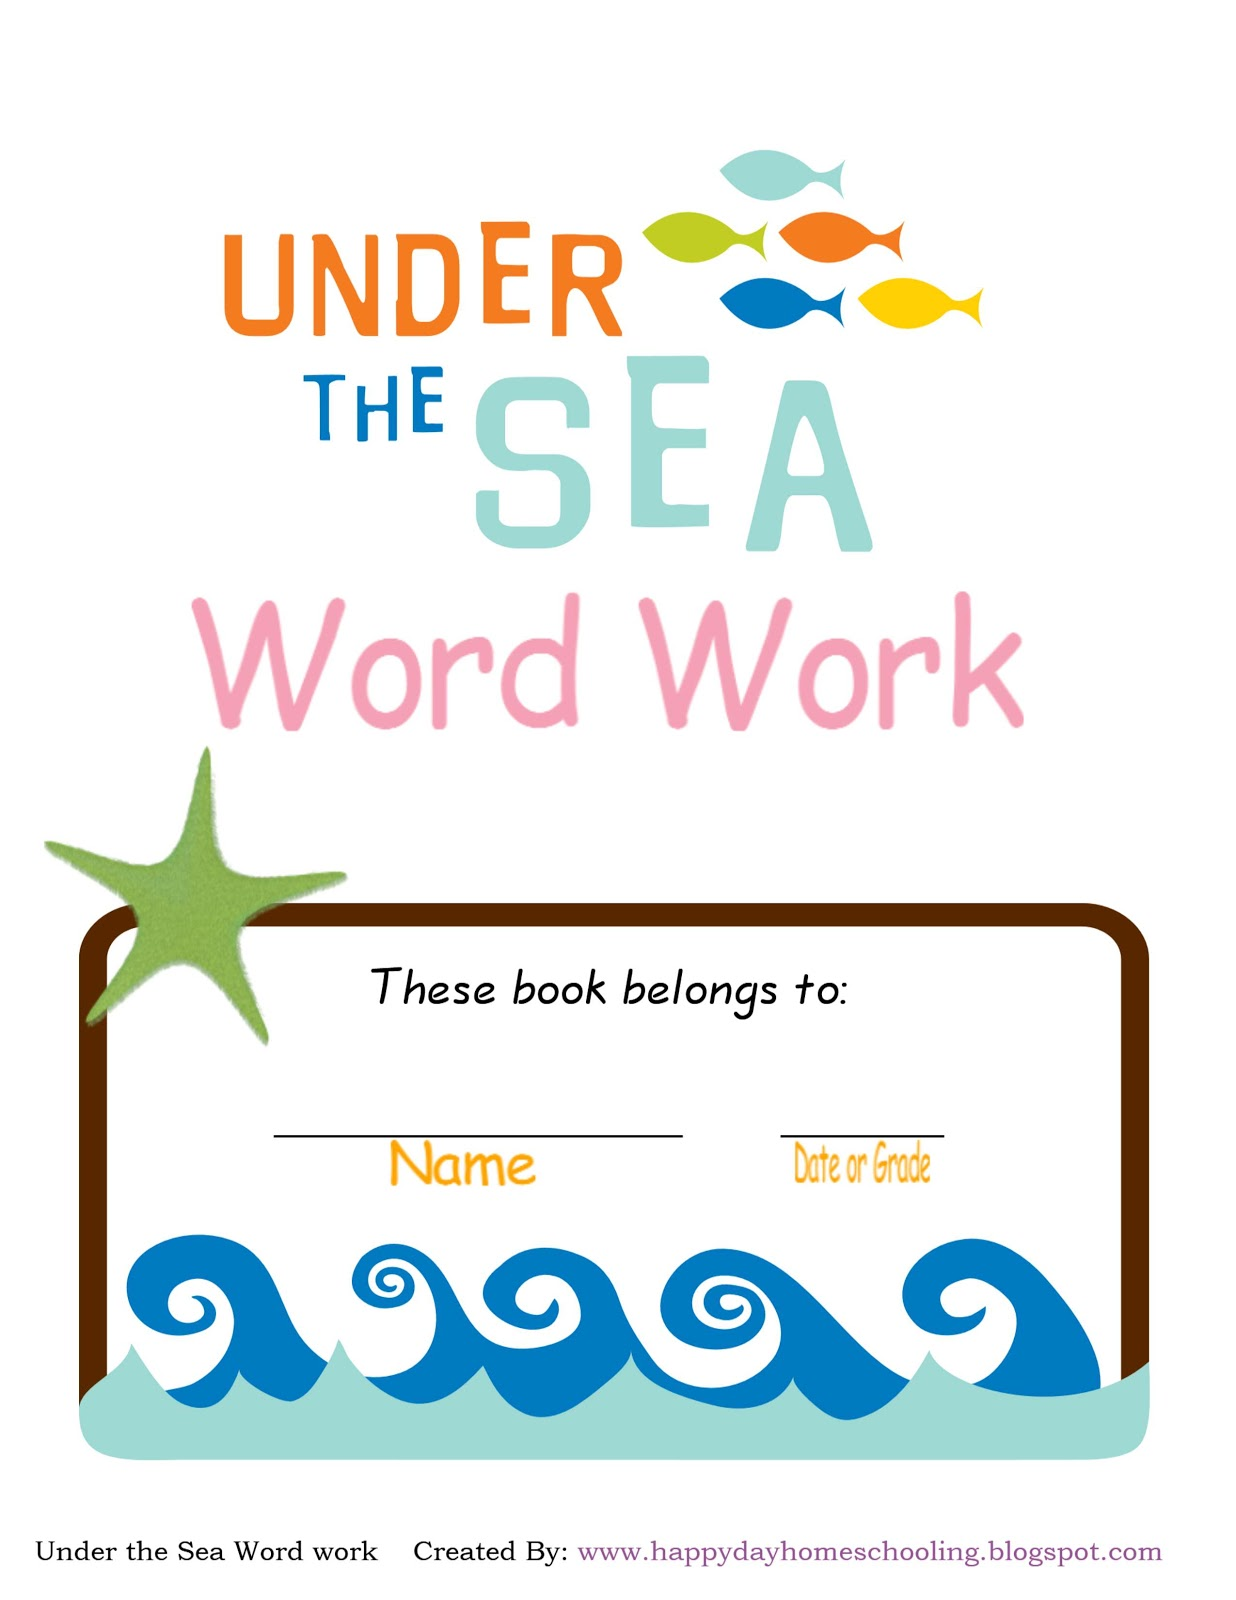 Happy Day Homeschooling Word Work Freebies